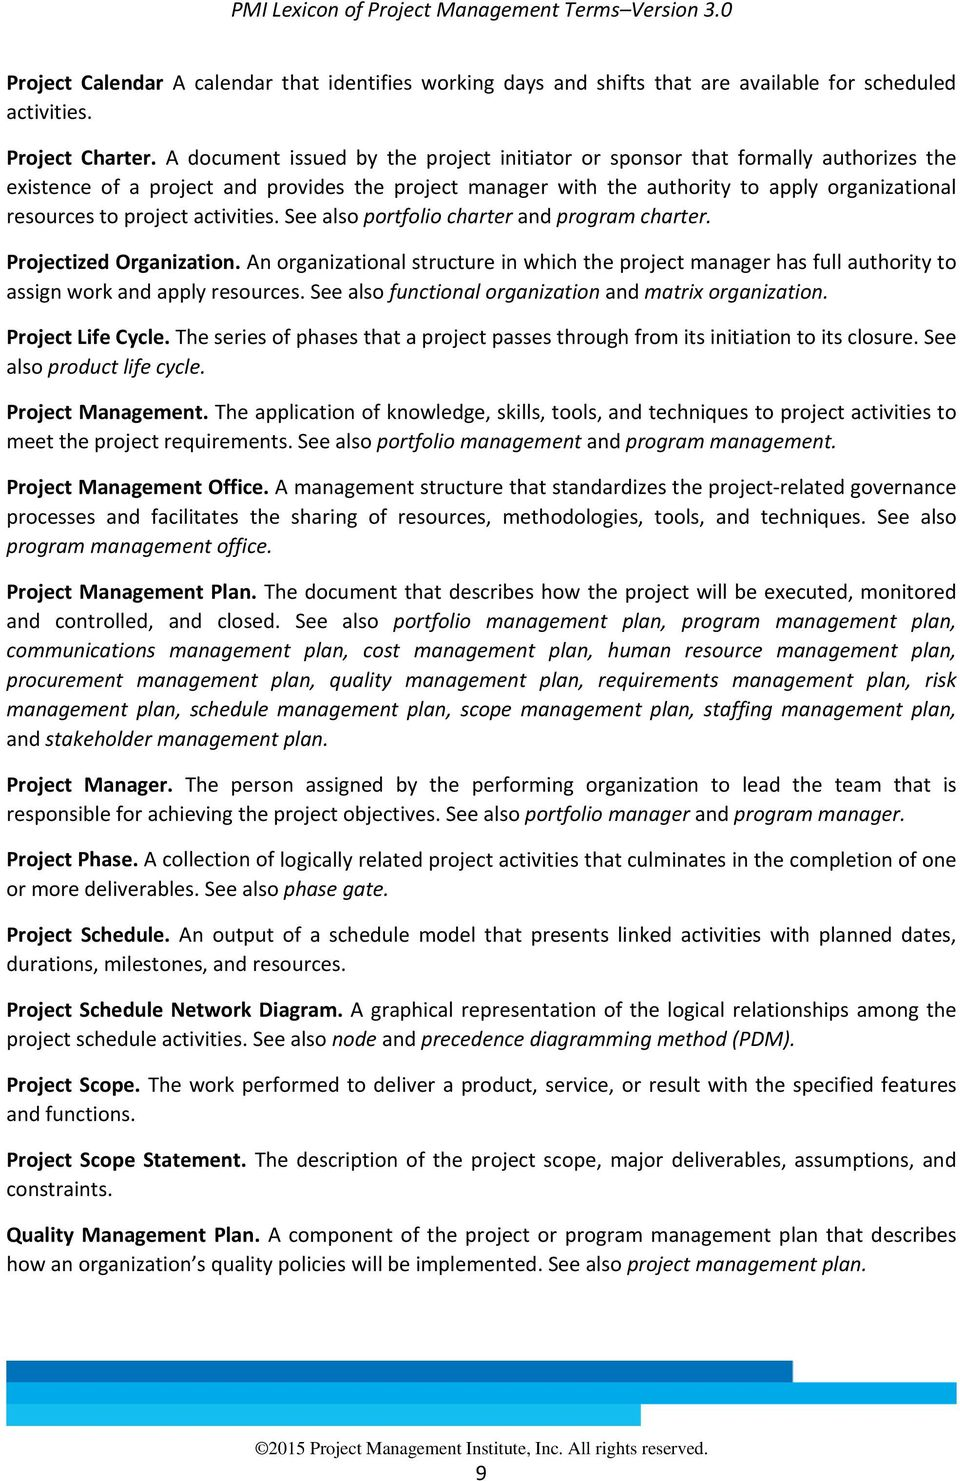 Project Activities See Also Portfolio Charter And Program Projectized Organization